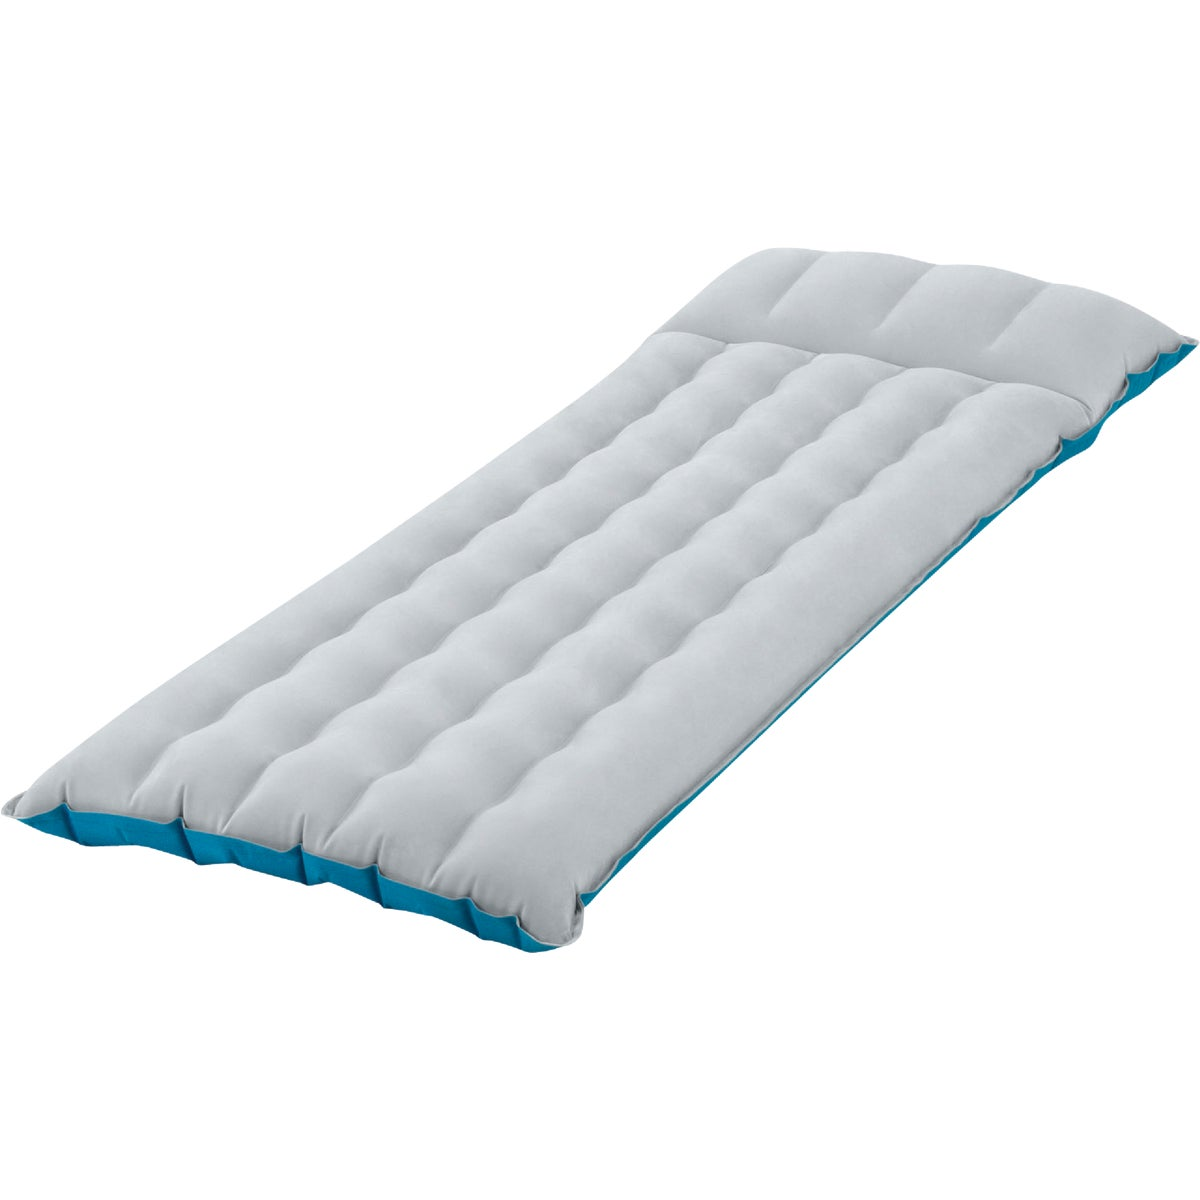 72.5X26.5 AIR MATTRESS - 68797E by Intex Recreation